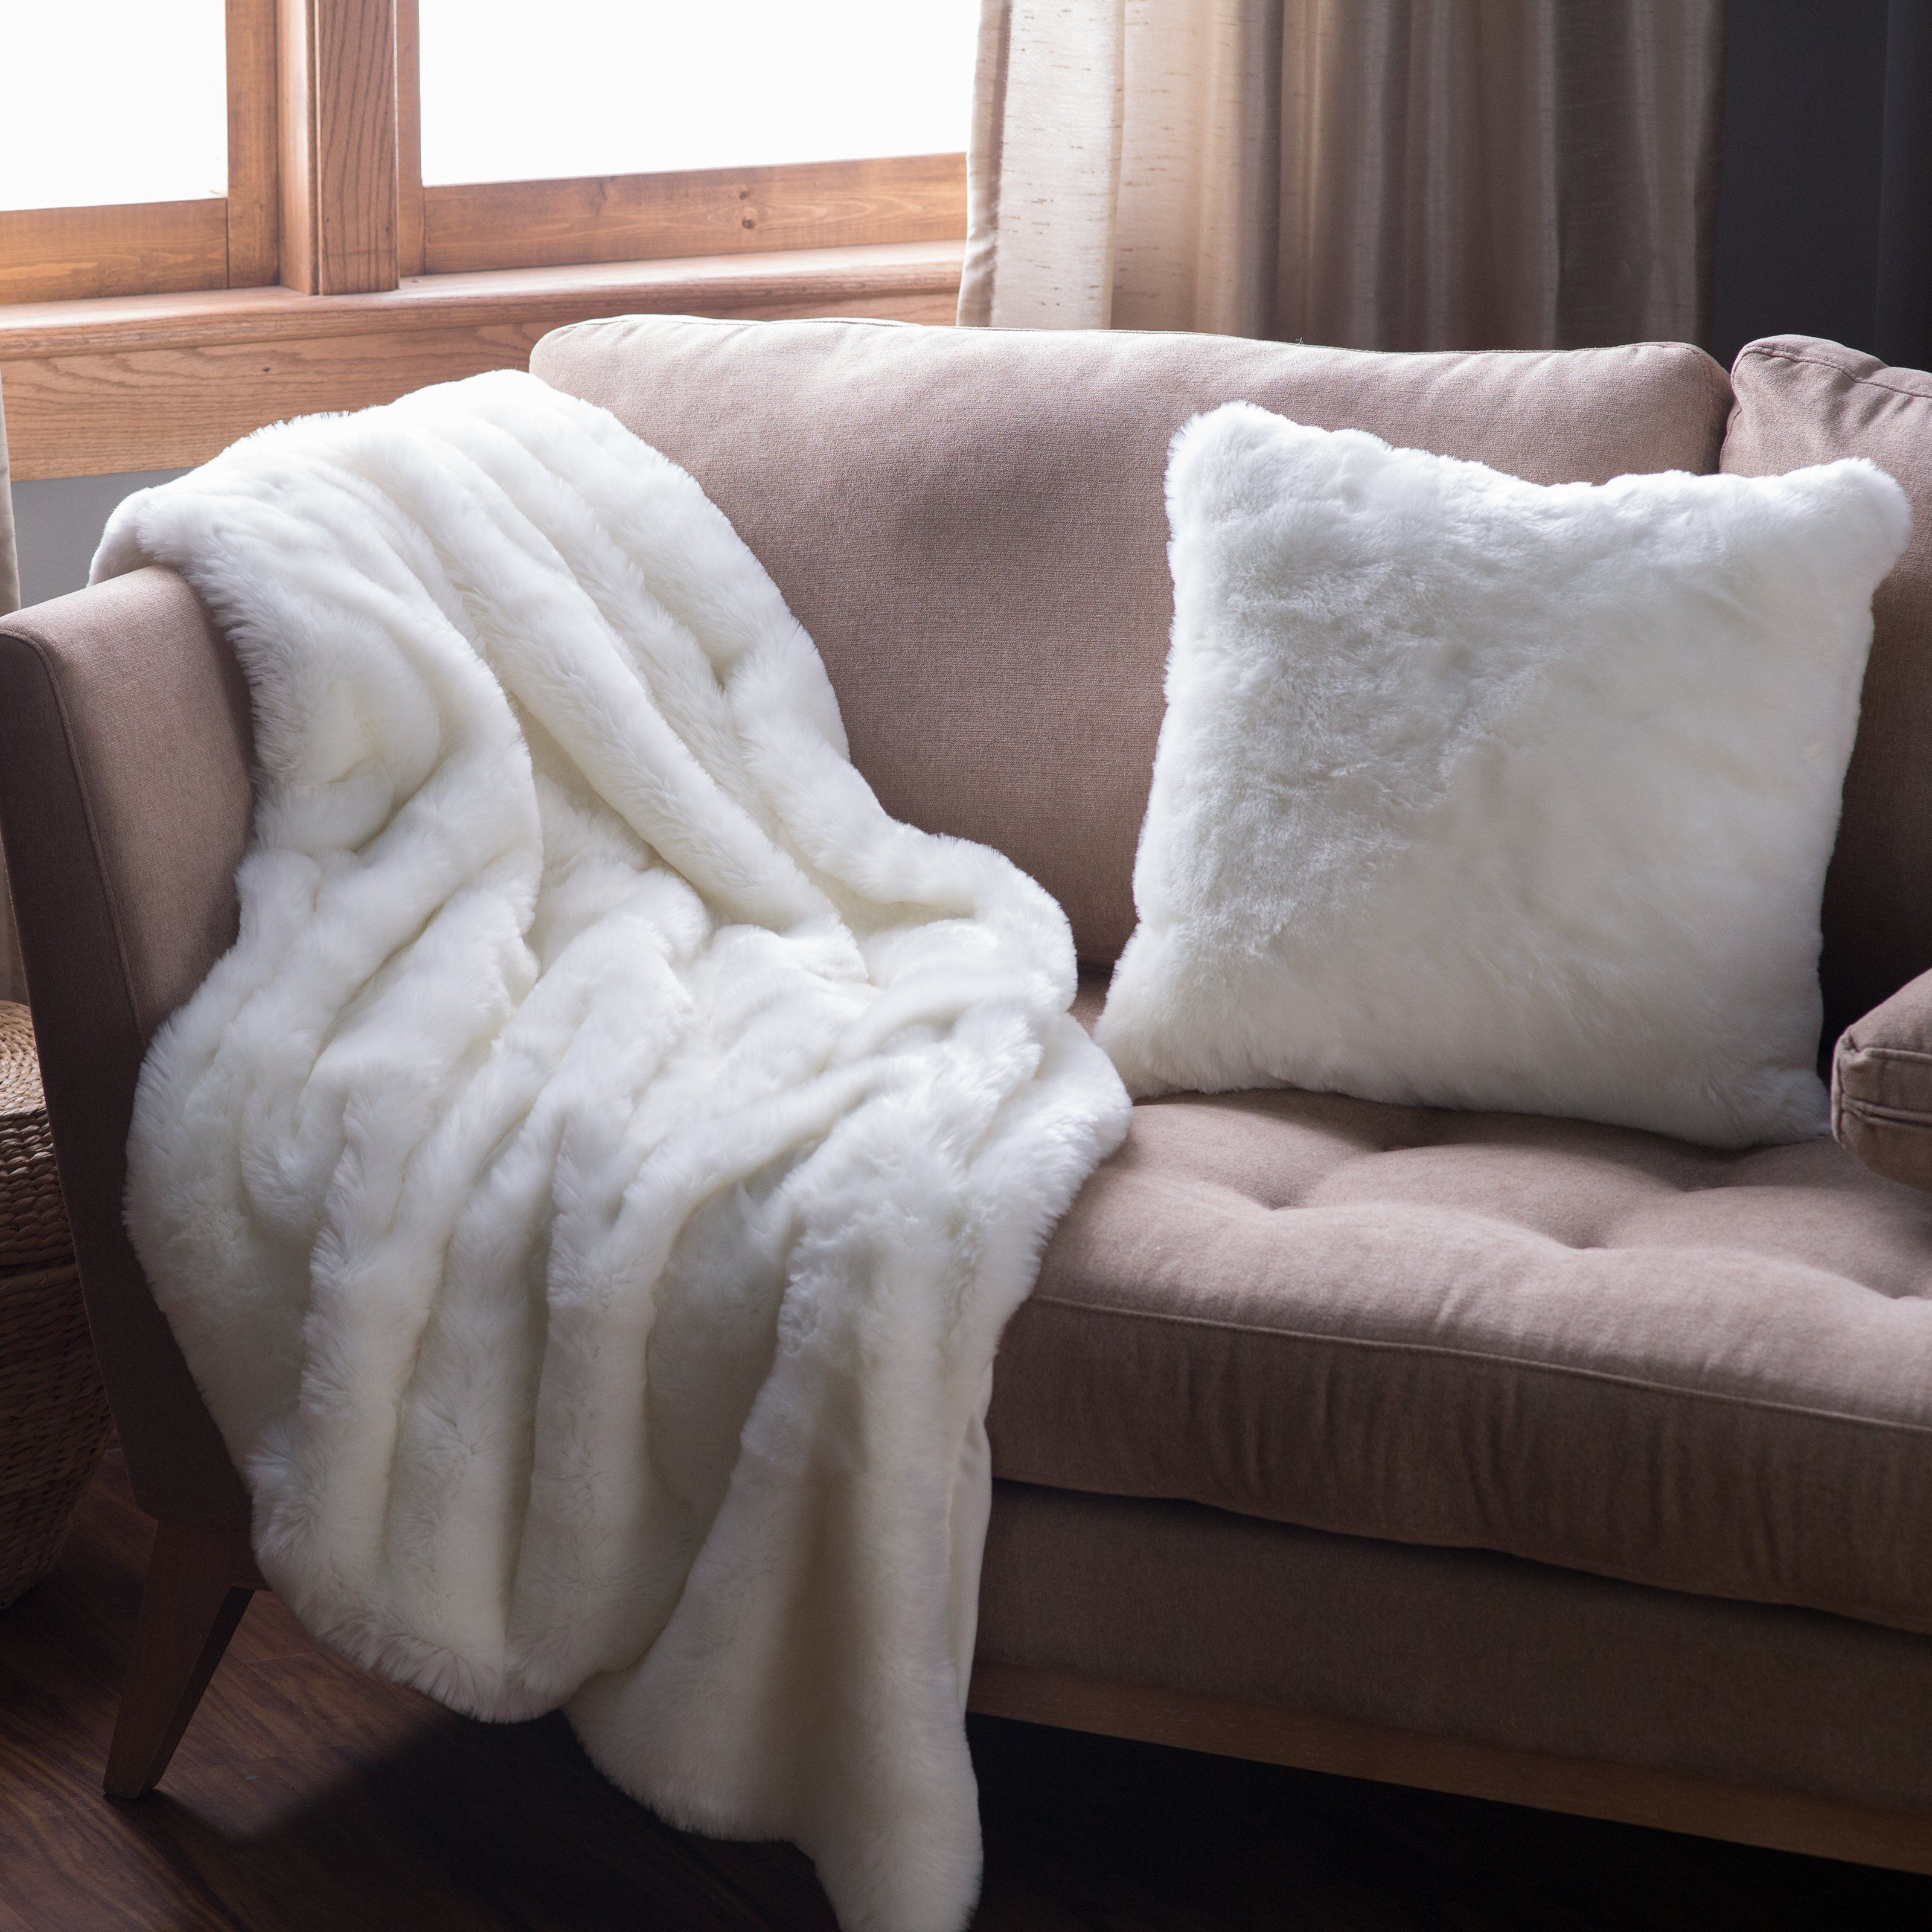 Solid Off White Faux Fur Throw Www Hayneedle Com Couch Throw Blanket Cozy Living Rooms Sofa Throw